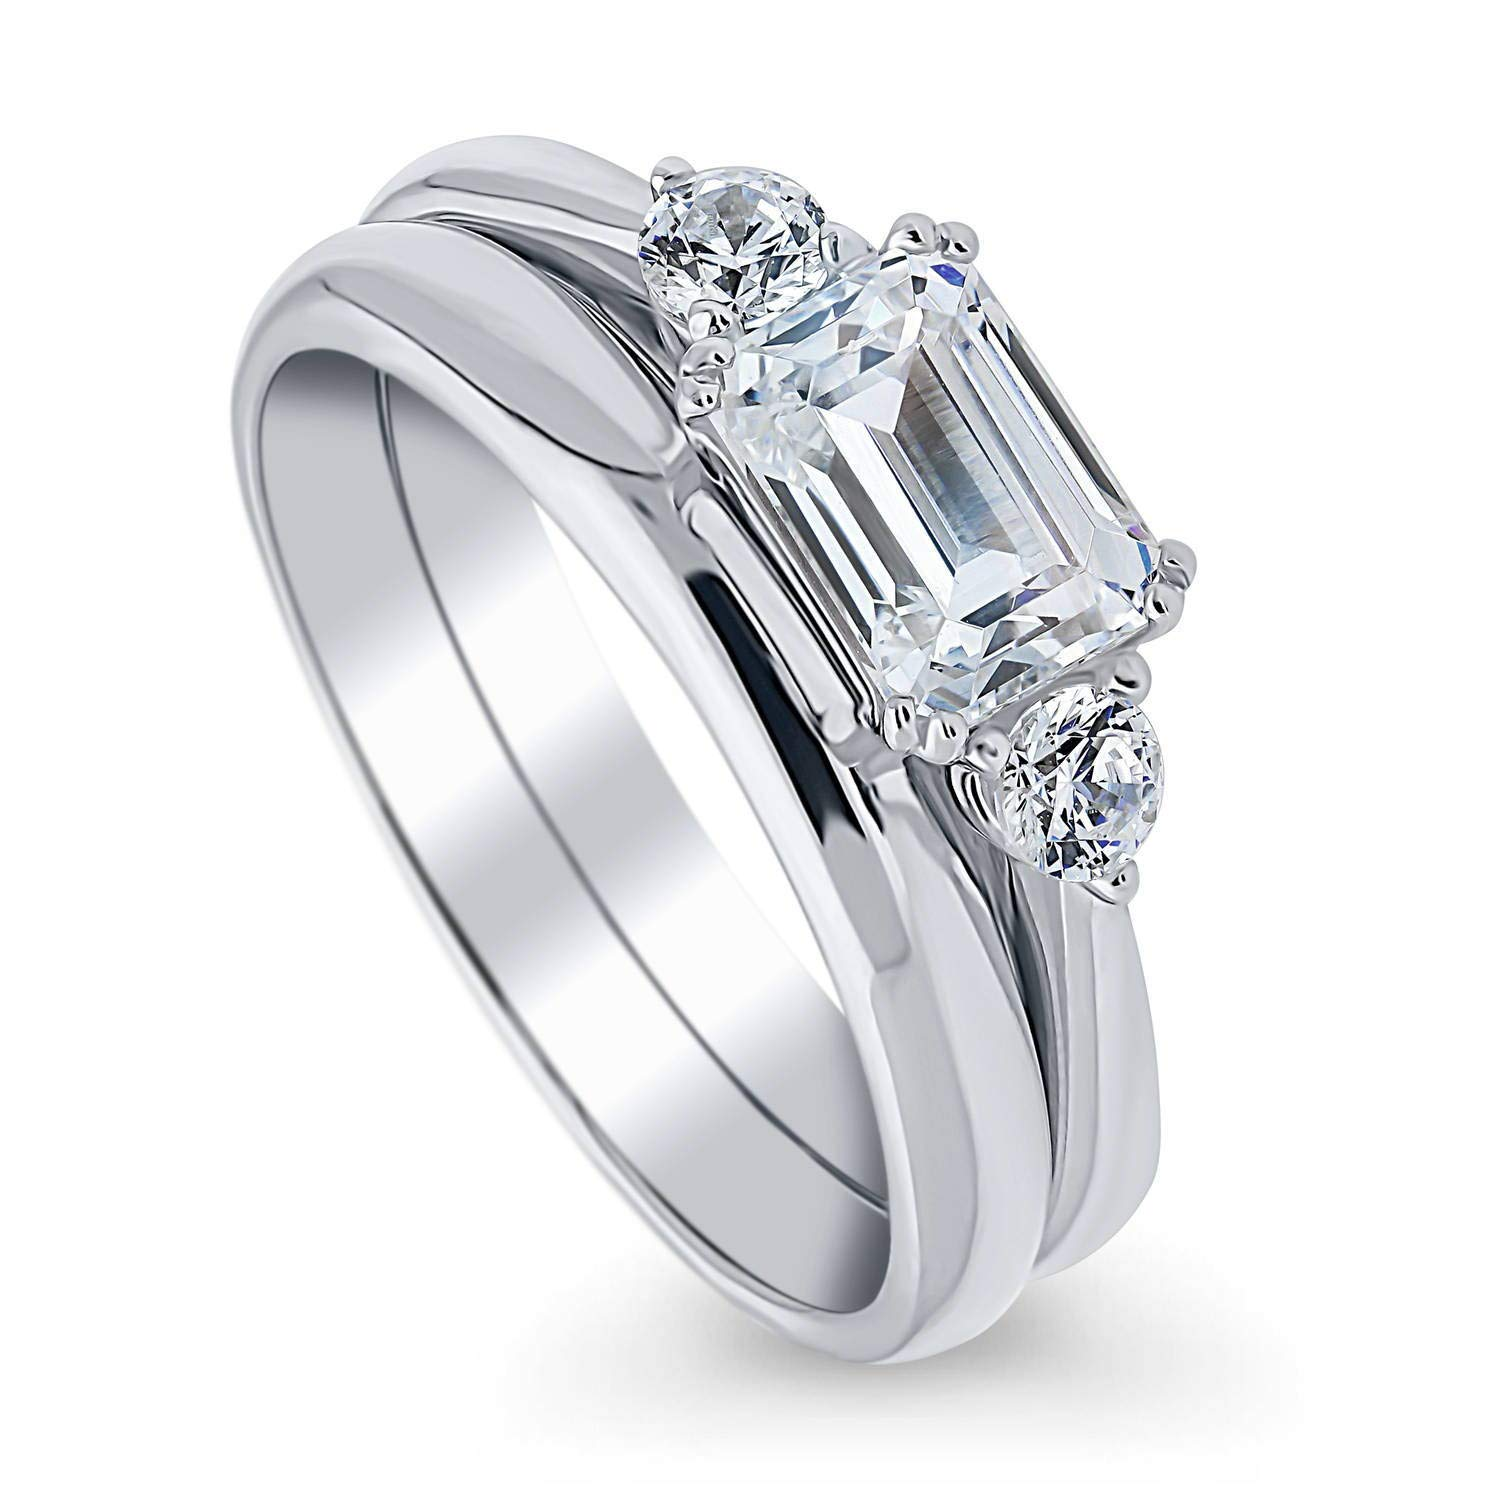 BERRICLE Rhodium Plated Sterling Silver 3-Stone East-West Engagement Wedding Ring Set Made with Swarovski Zirconia Emerald Cut 1.22 CTW Size 6